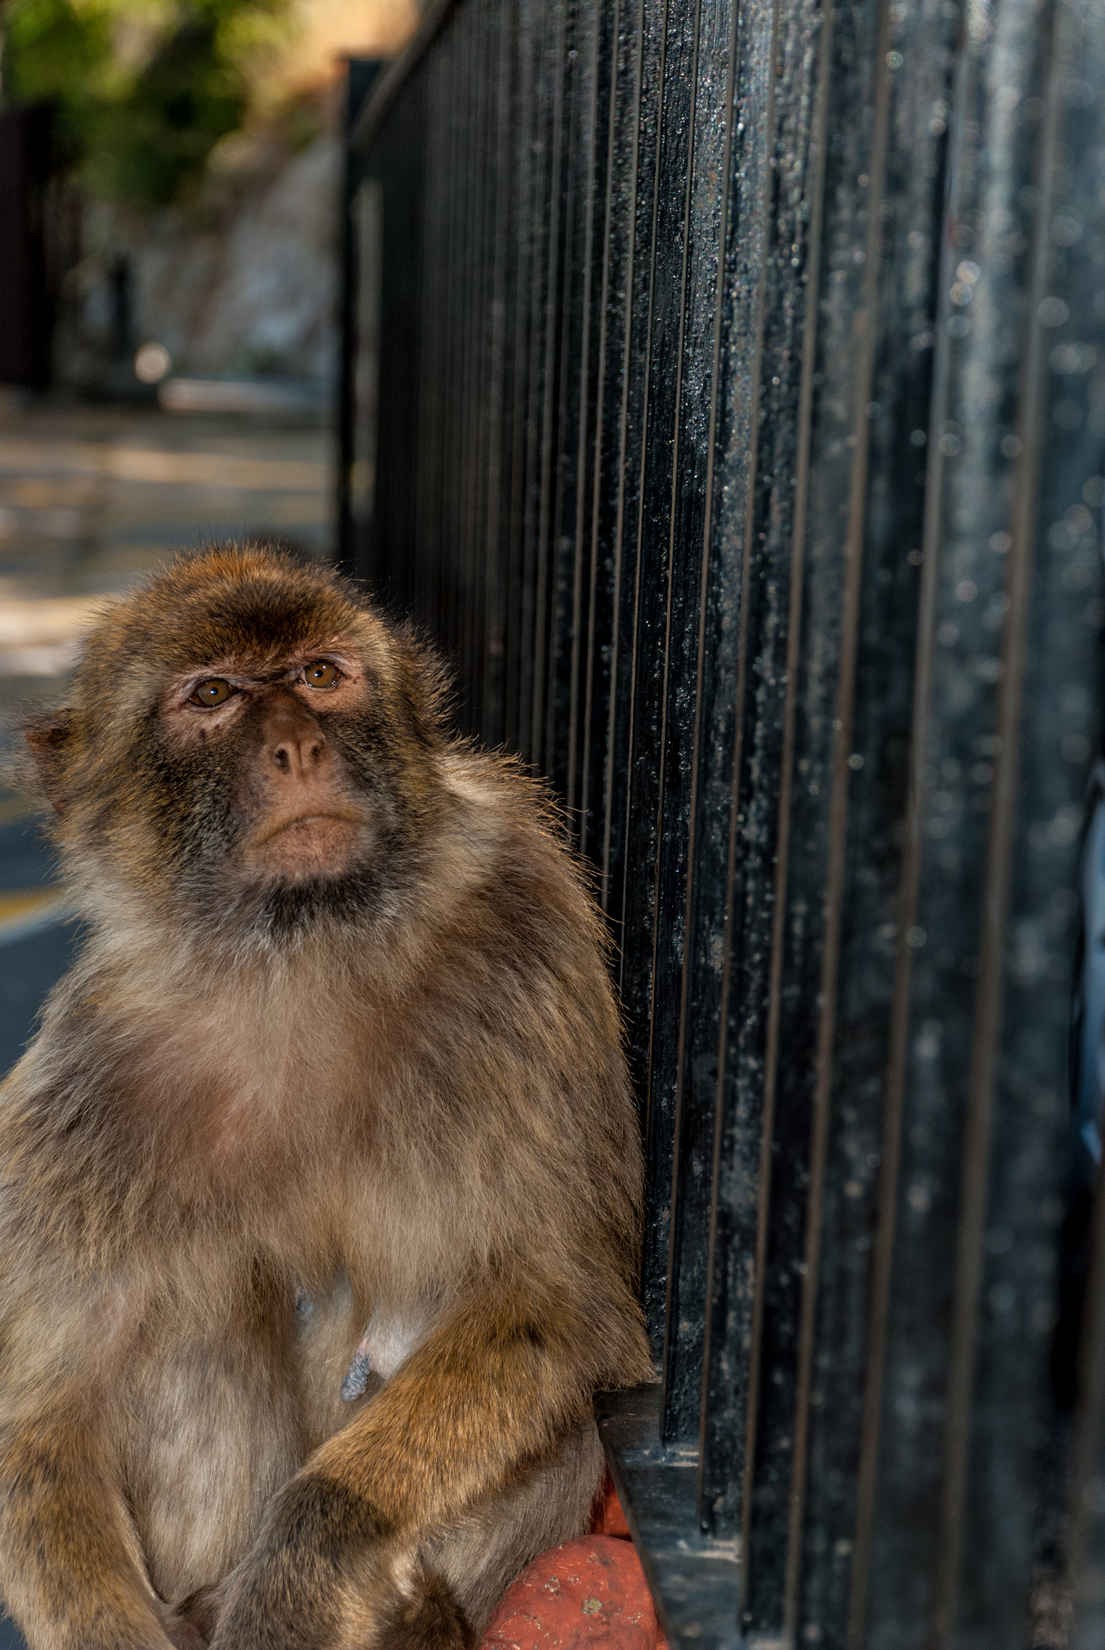 Gibraltar is home to a unique population of Barbary macaques